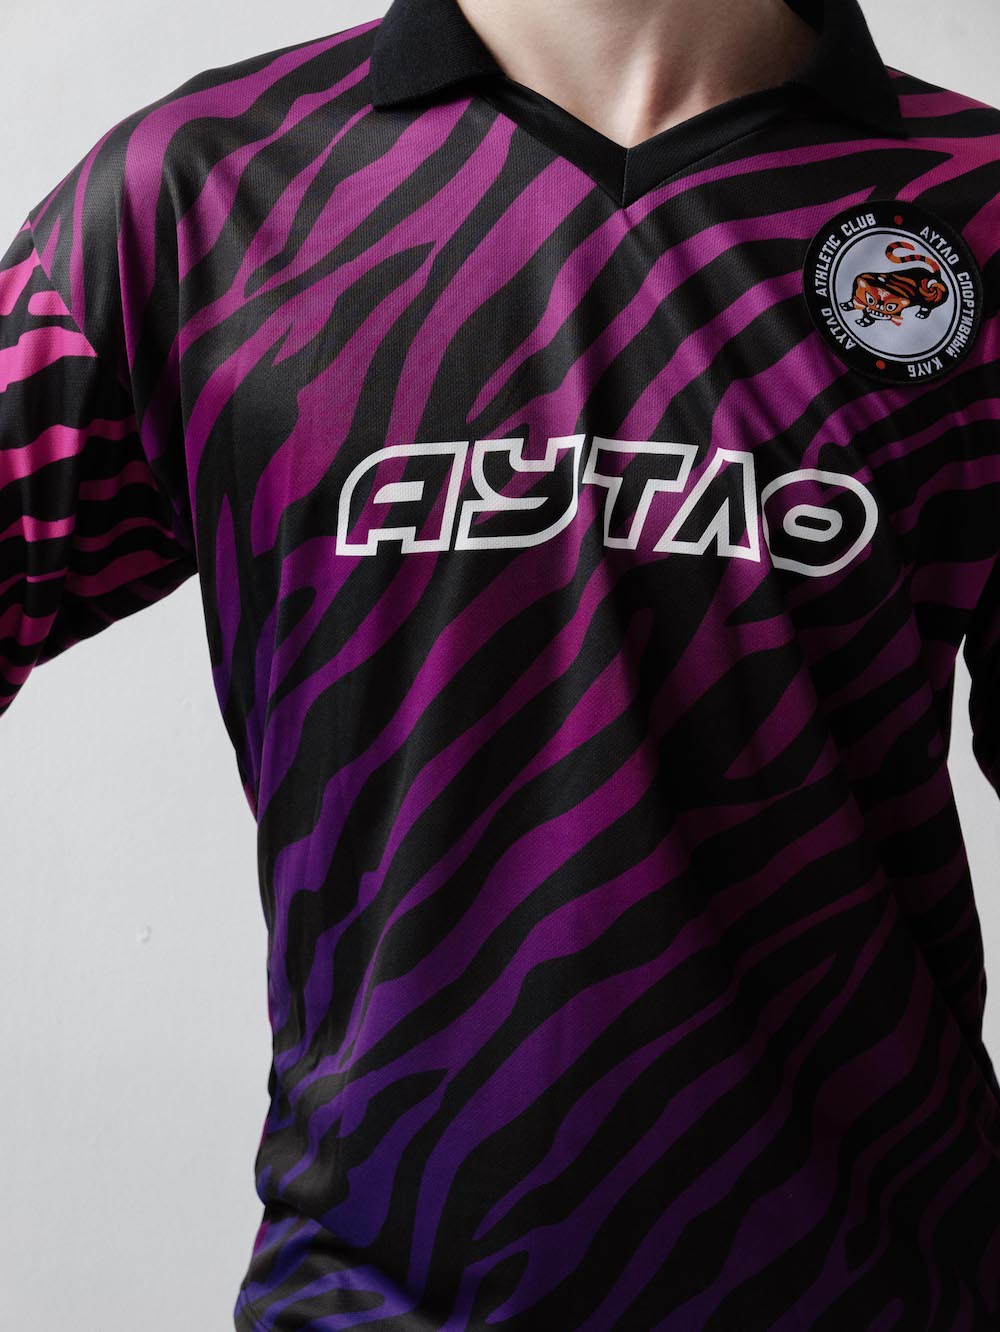 Outlaw Athletic Club Home Kit Longsleeve